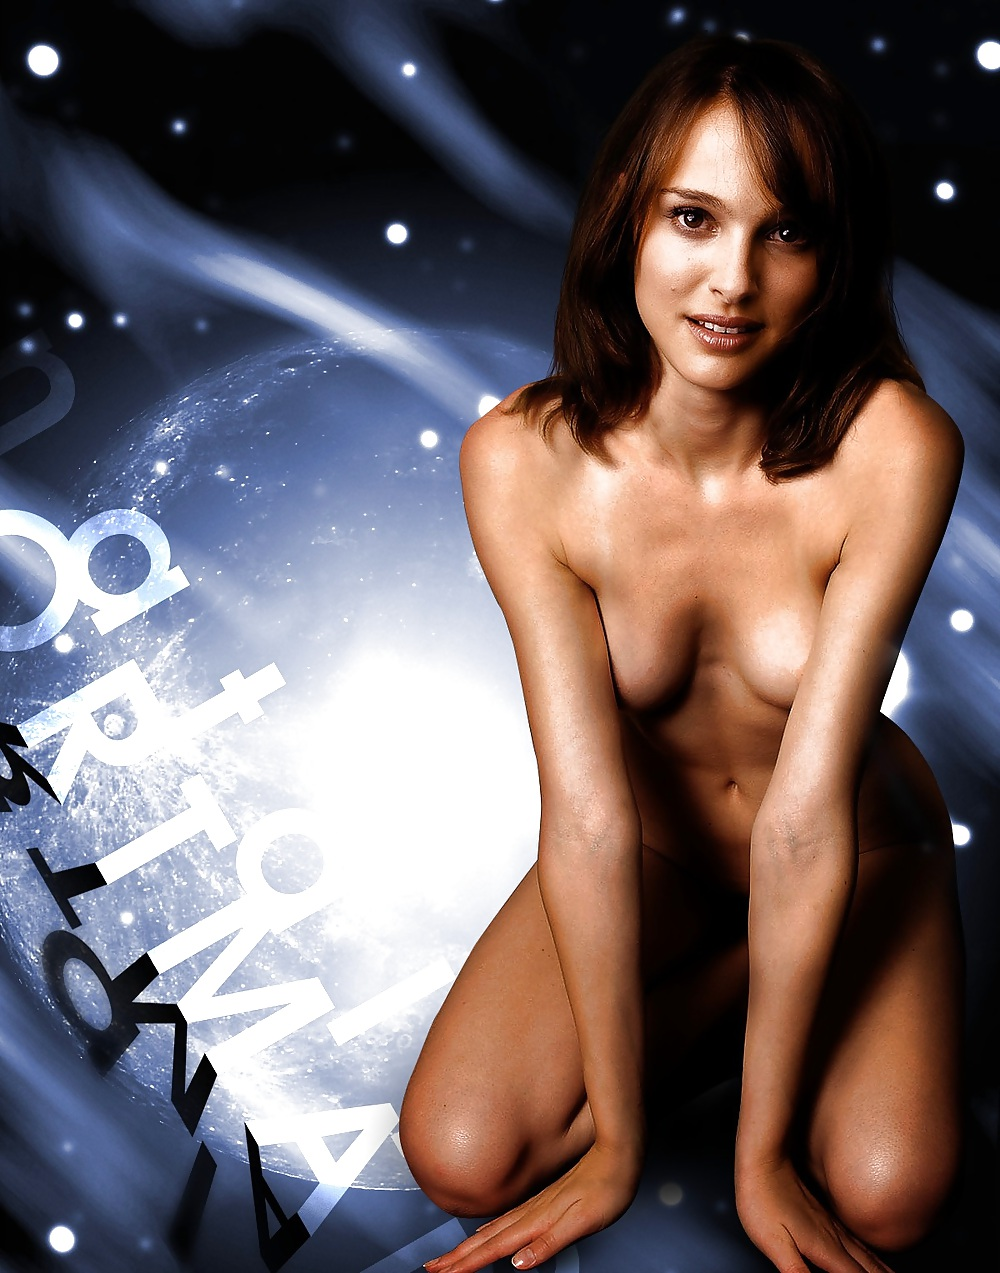 natalie-portman-shows-off-her-naked-ass-fisting-trailer